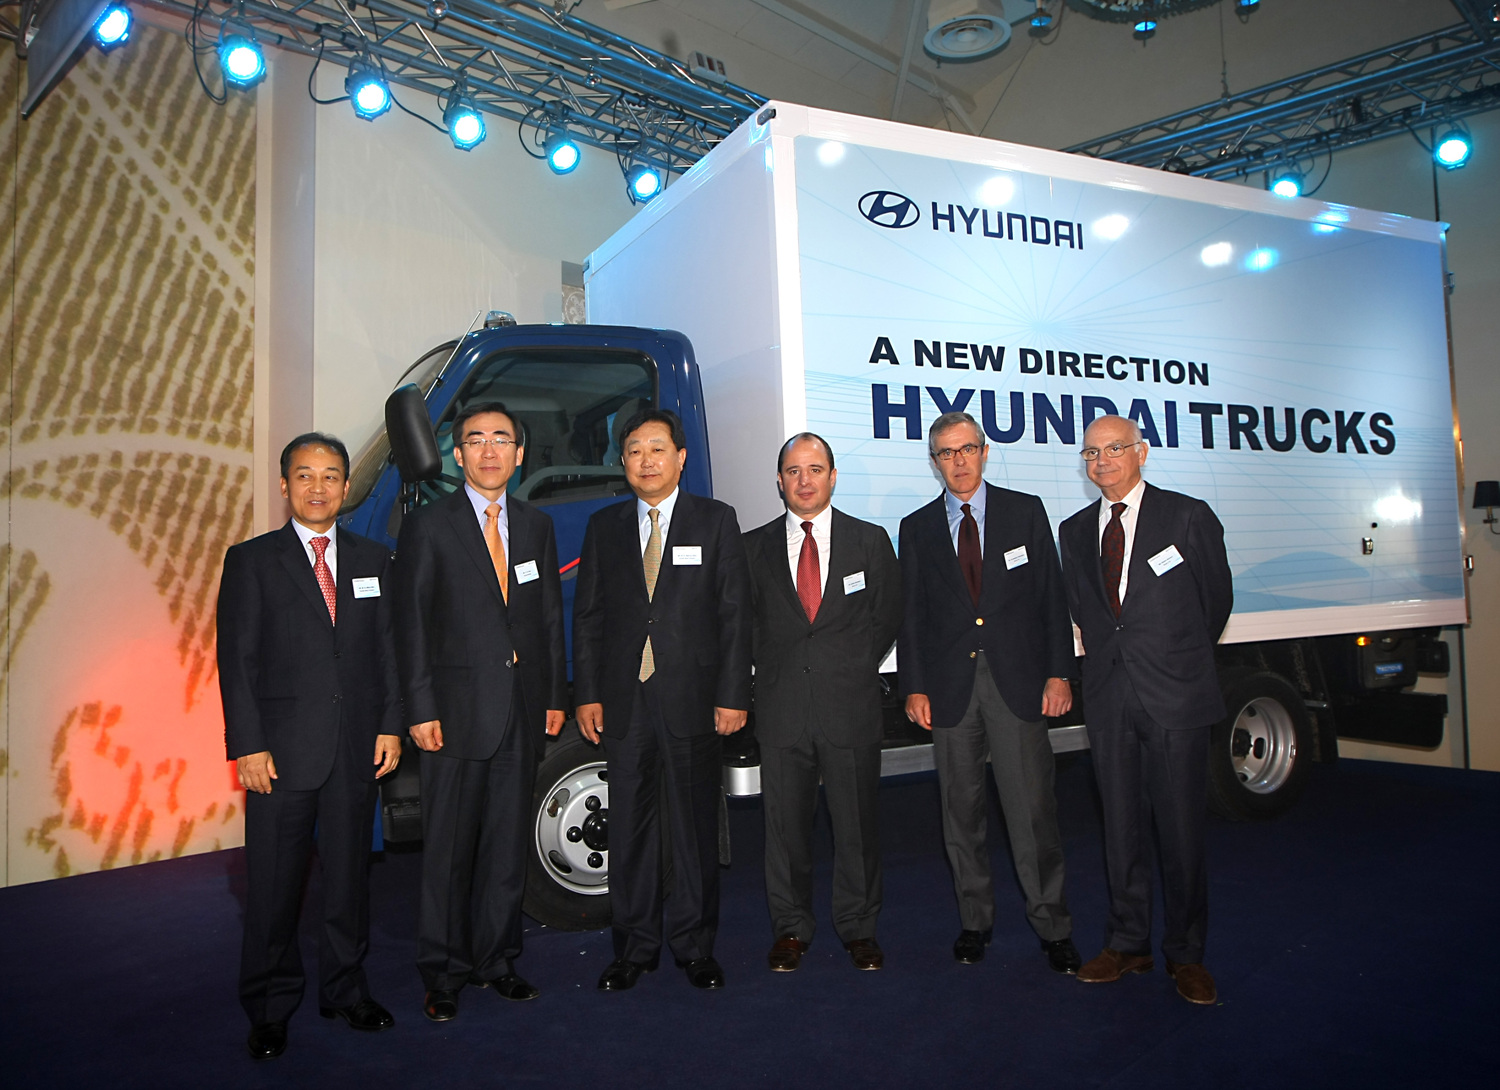 Hyundai Hd65 Mighty And Hd72 Wiring Diagram S Truck Lands In Europe Motor Company